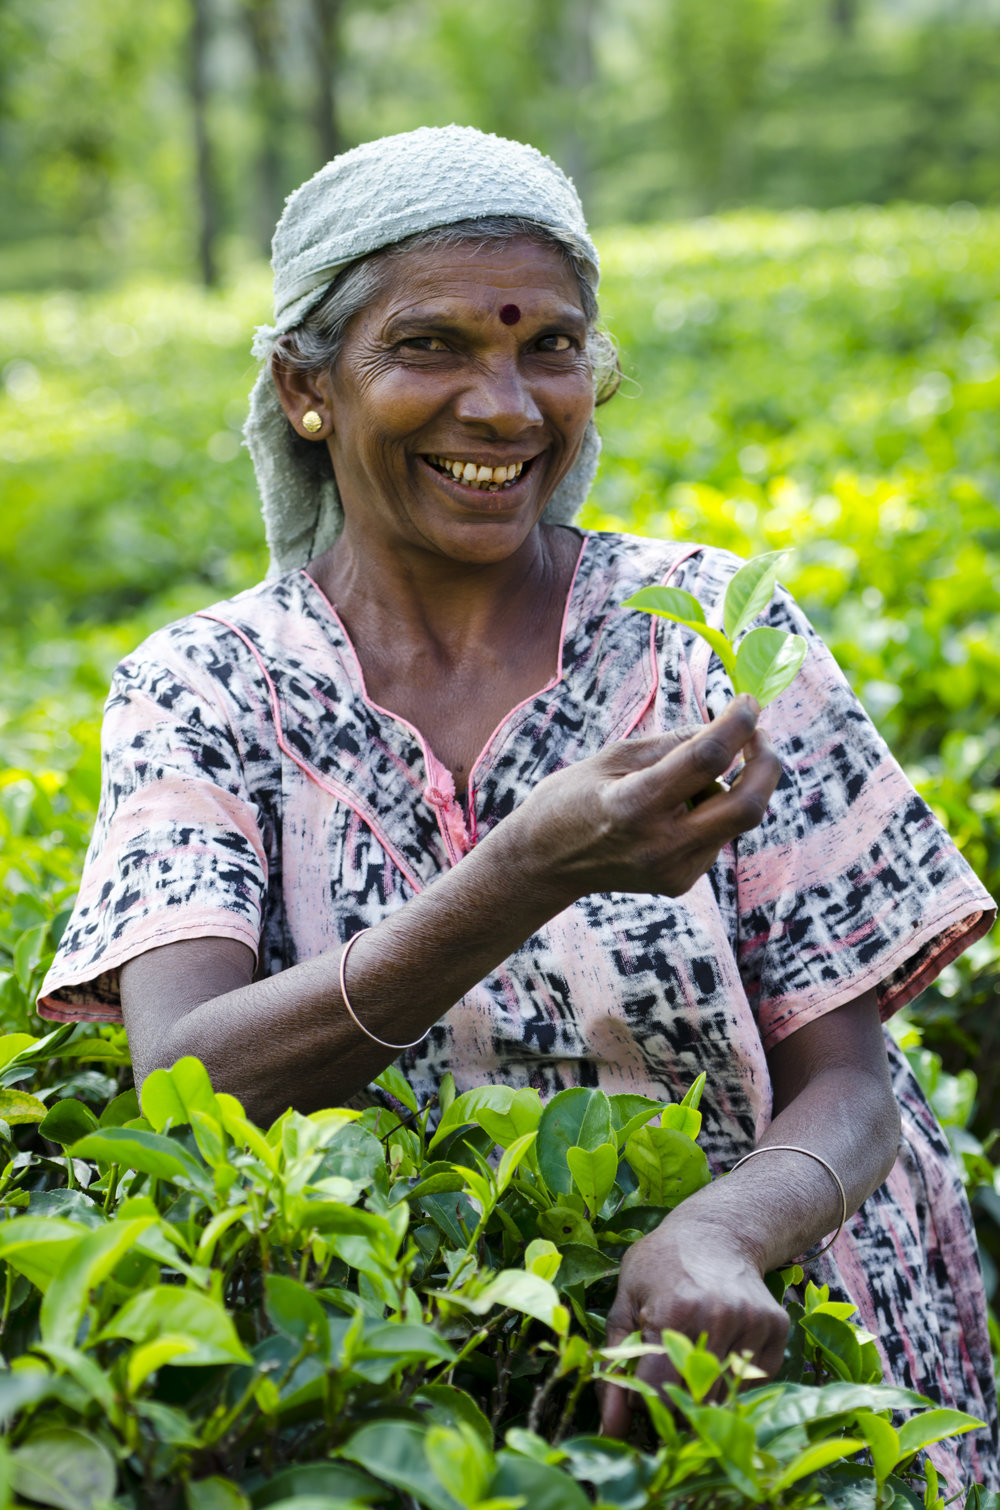 invite-to-paradise-sri-lanka-holiday-honeymoon-tea-plantations-mountains-tea-picker-3.jpg